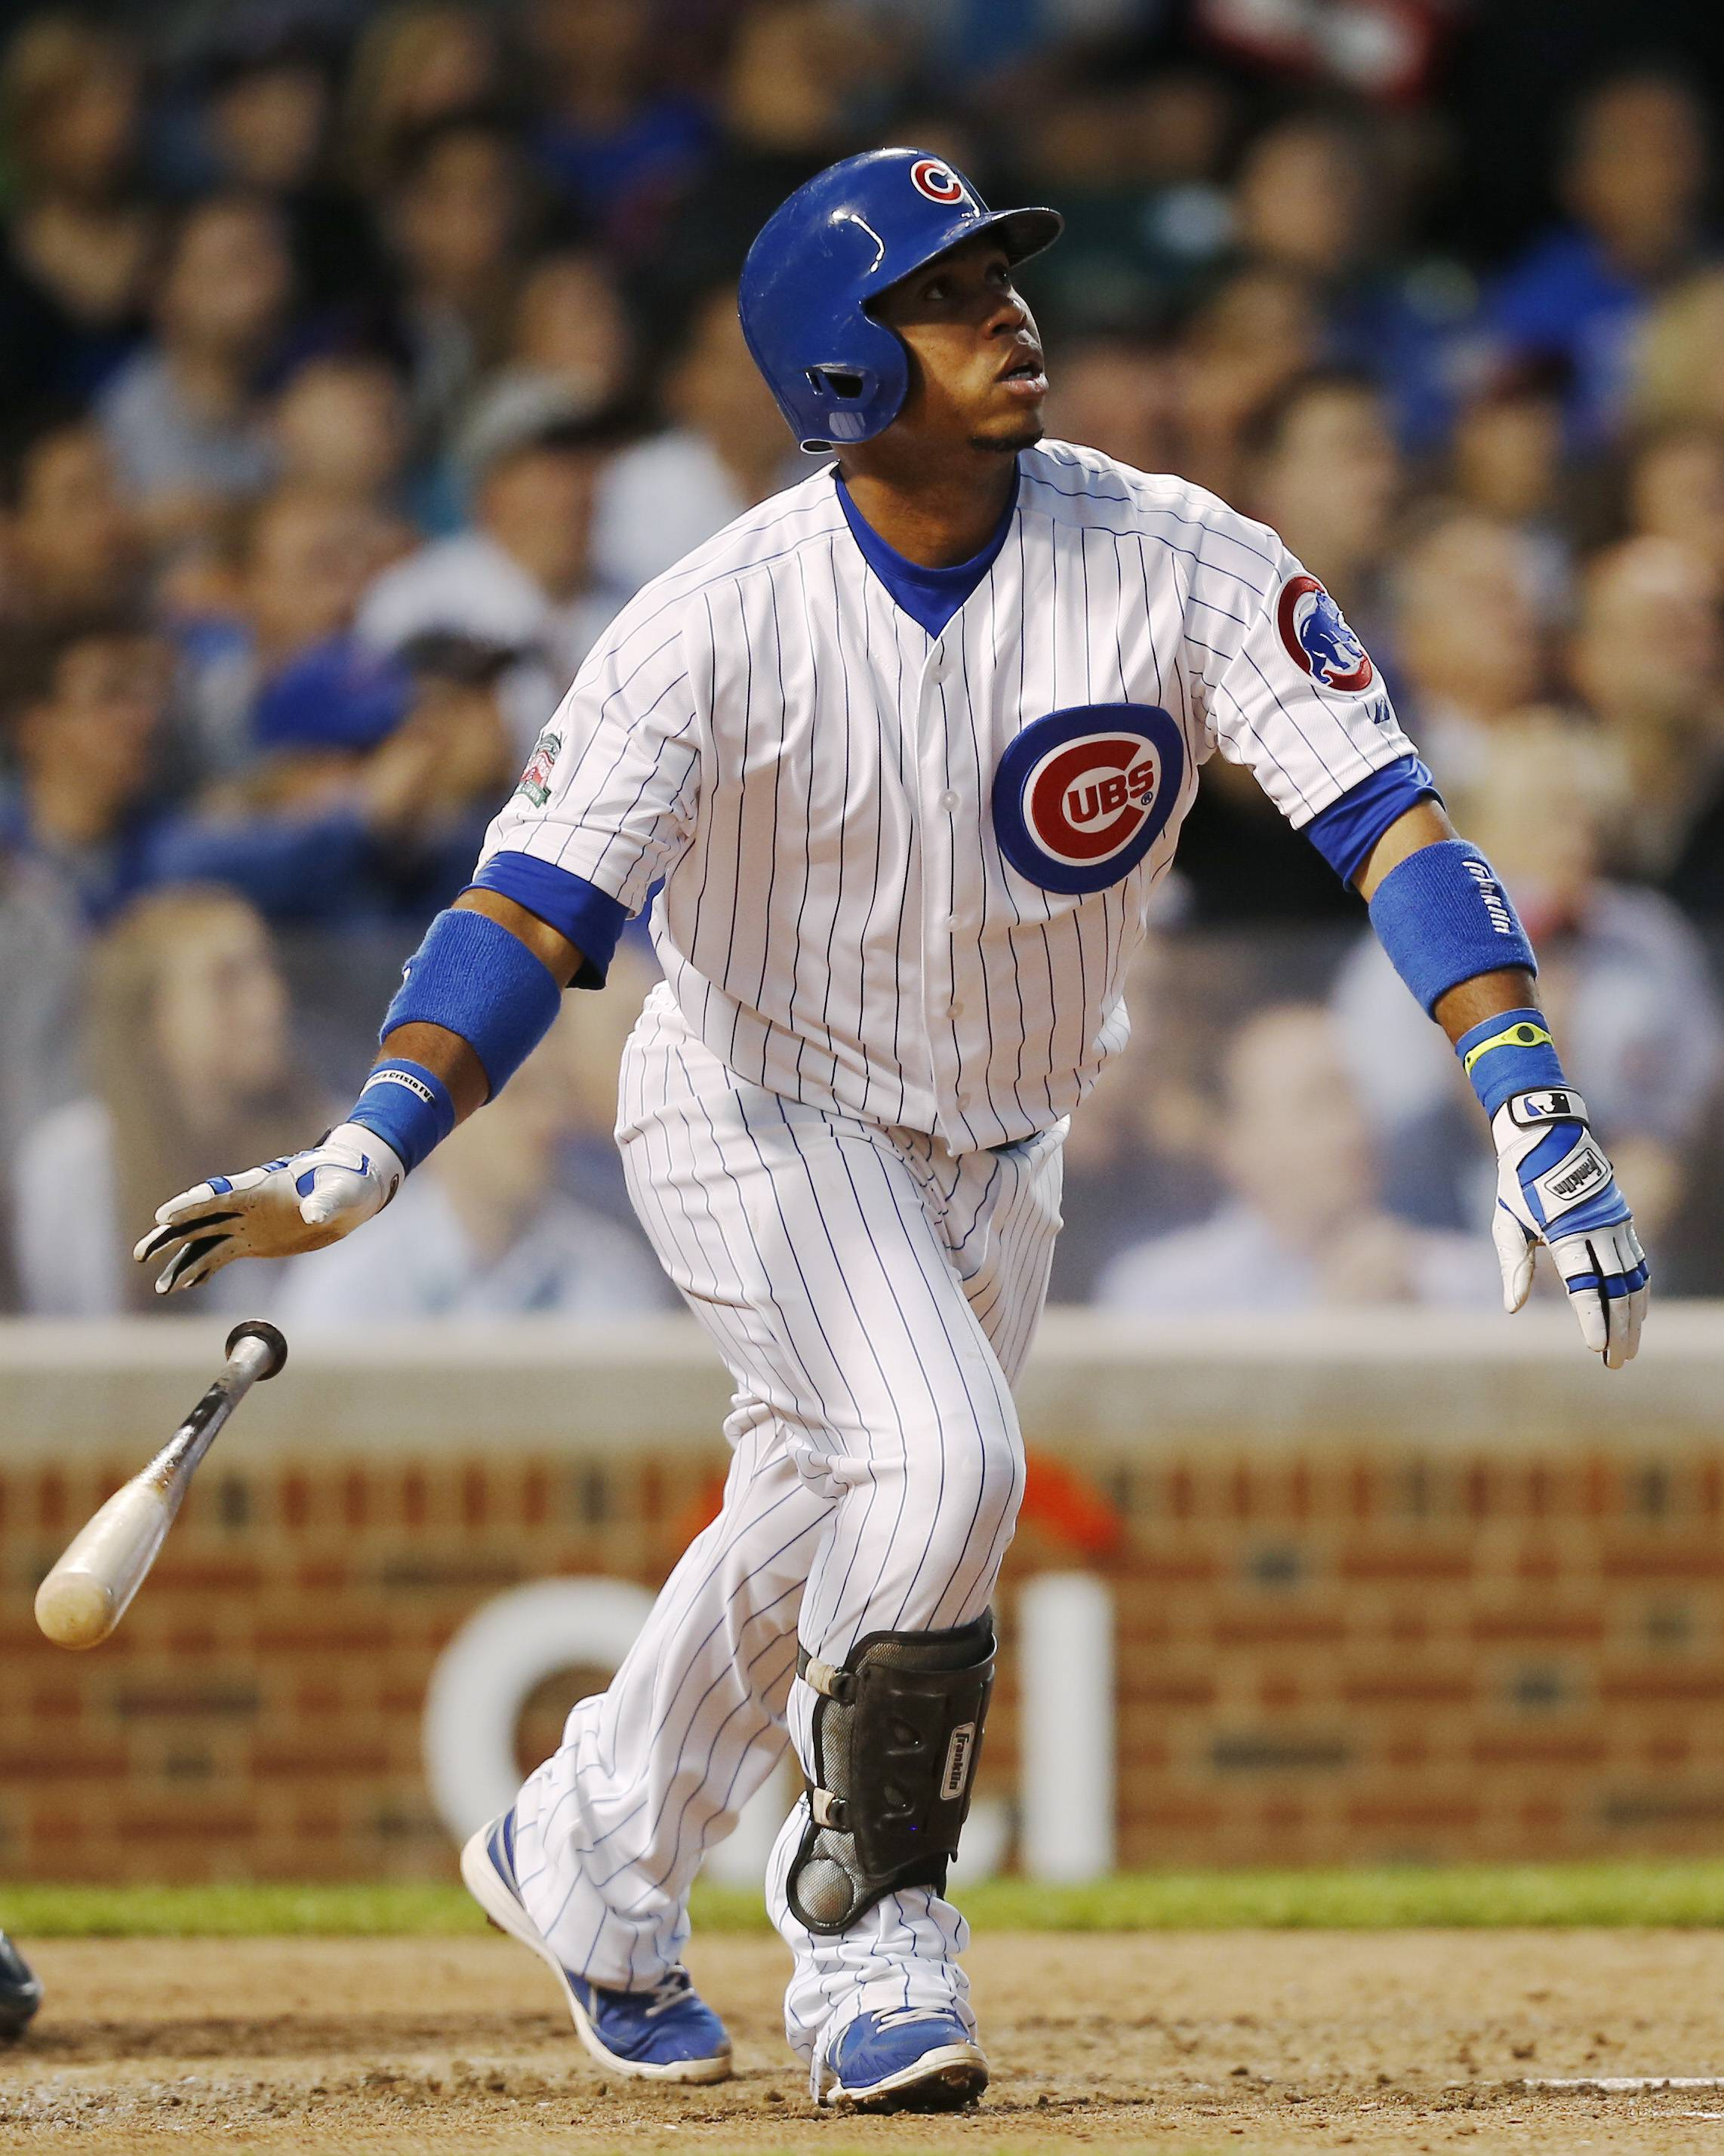 Chicago Cubs' Luis Valbuena hits a three-run home run against the San Diego Padres during the fourth inning of a baseball game on Wednesday, July 23, 2014, in Chicago.